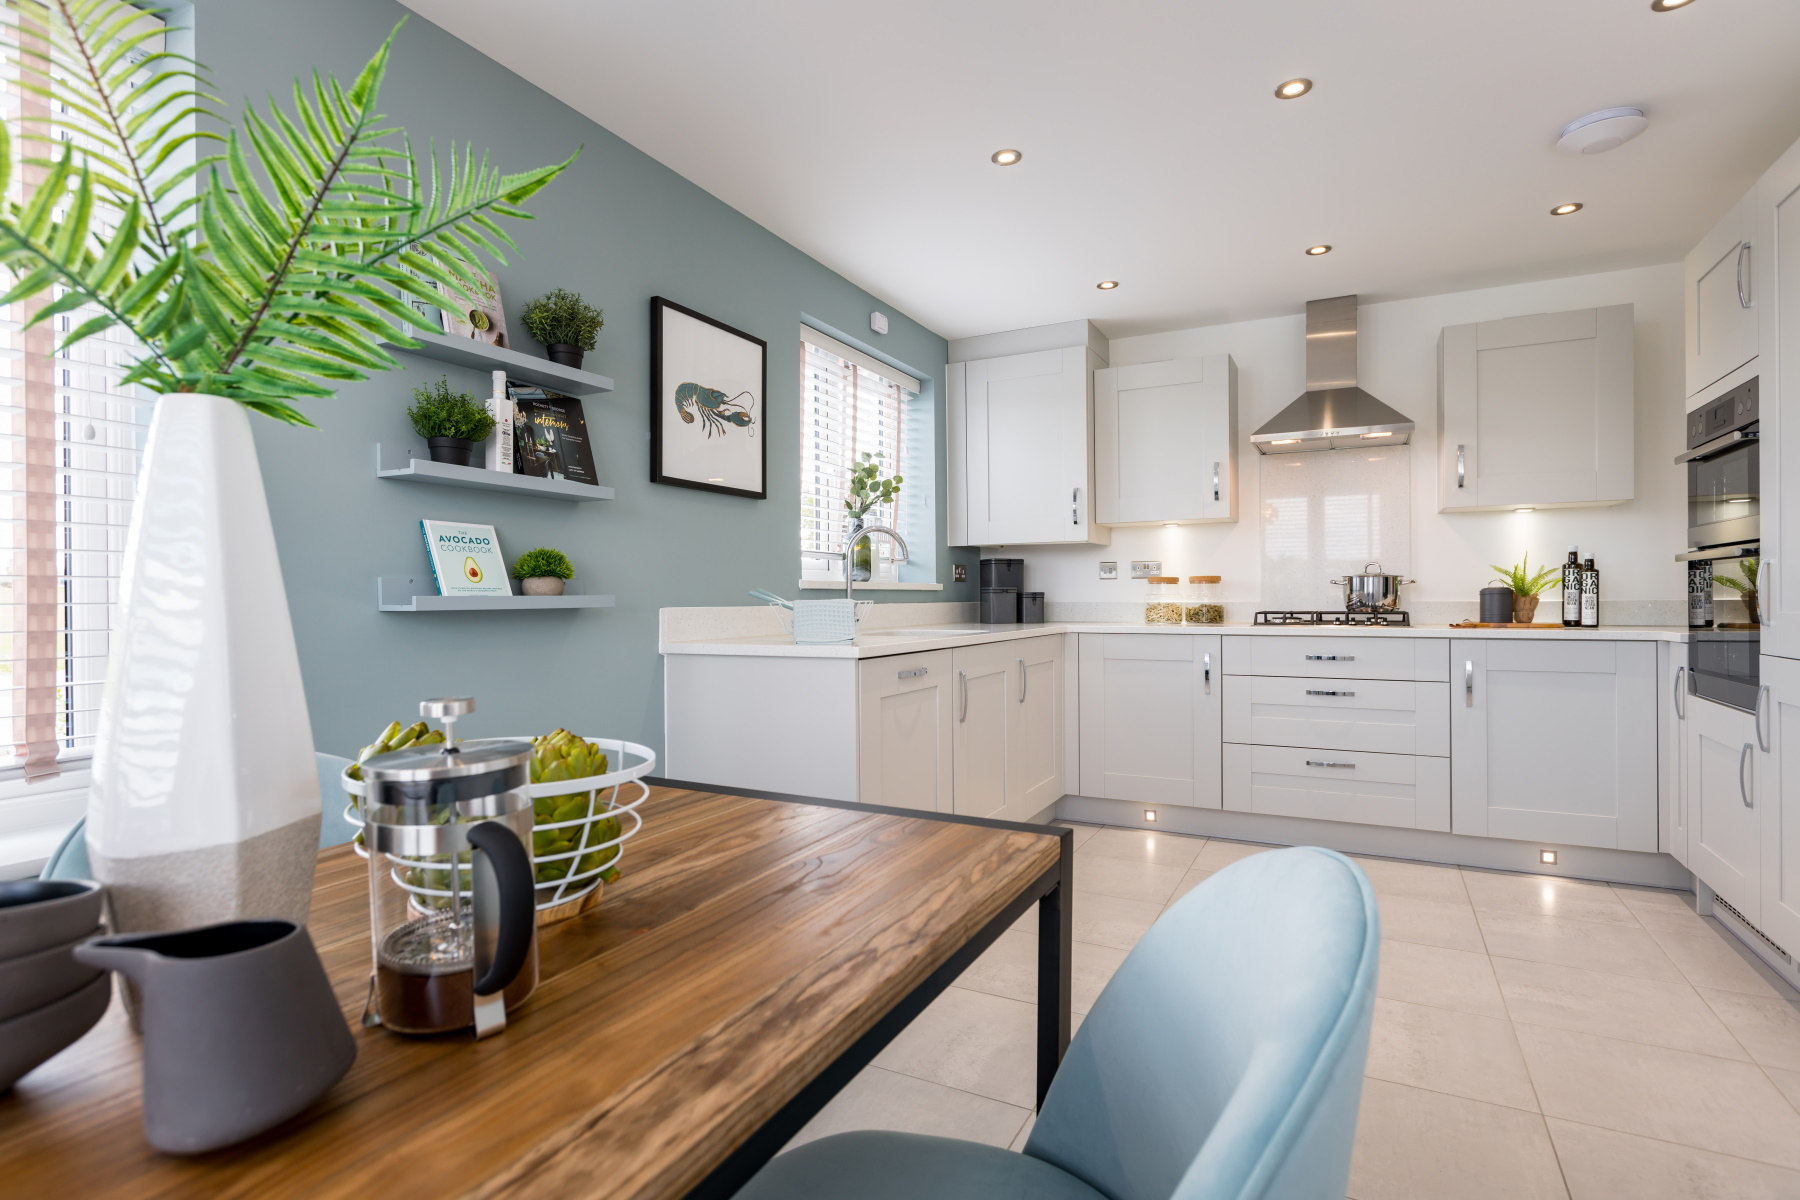 Taylor Wimpey Exeter - Cranbrook - Easdale example kitchen 2